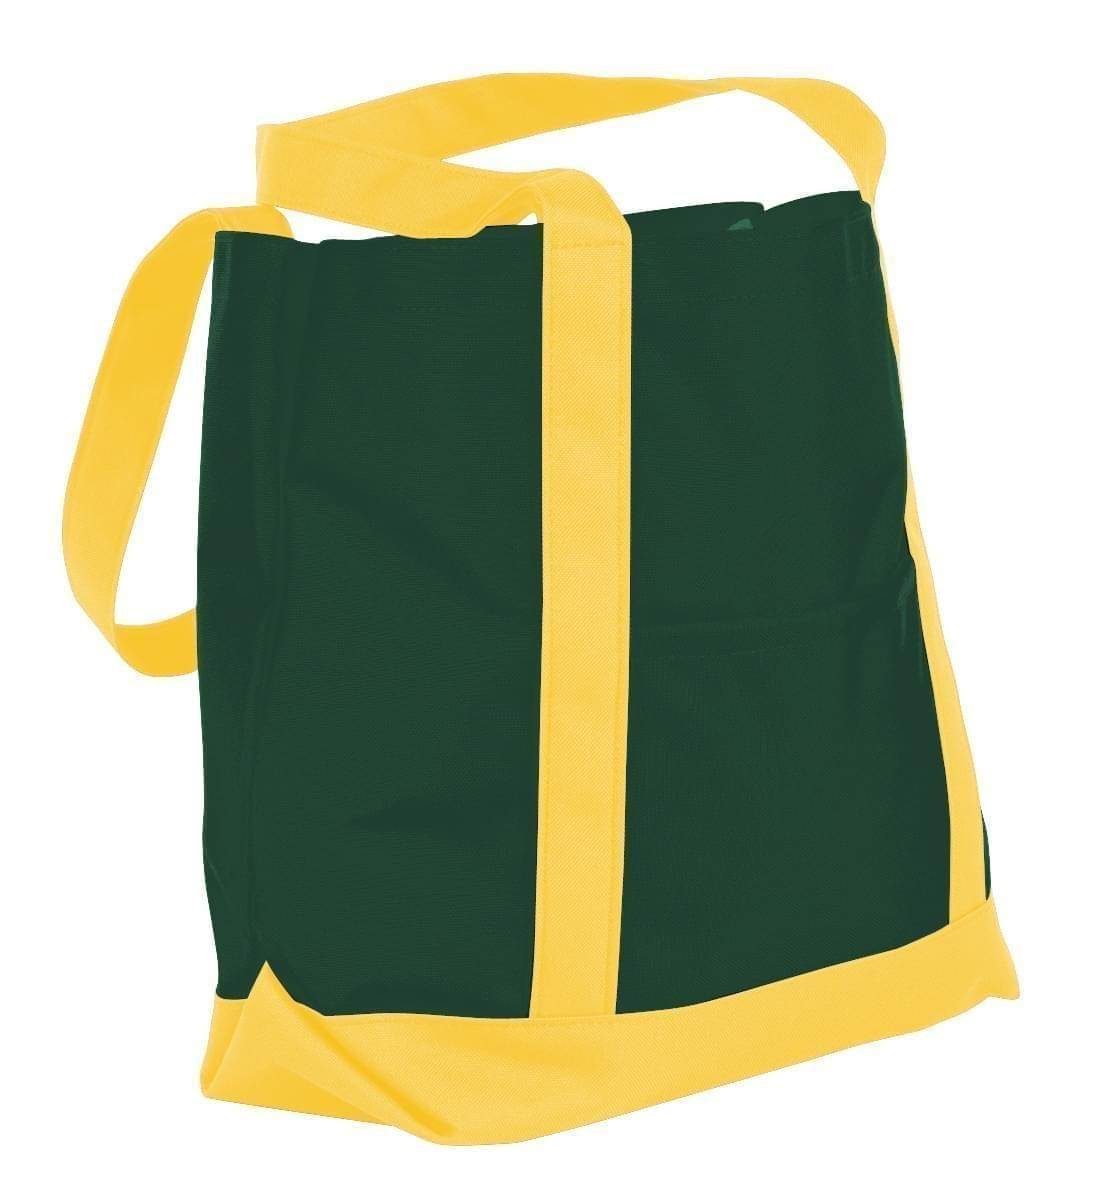 USA Made Canvas Fashion Tote Bags, Hunter Green-Gold, XAACL1UAIQ